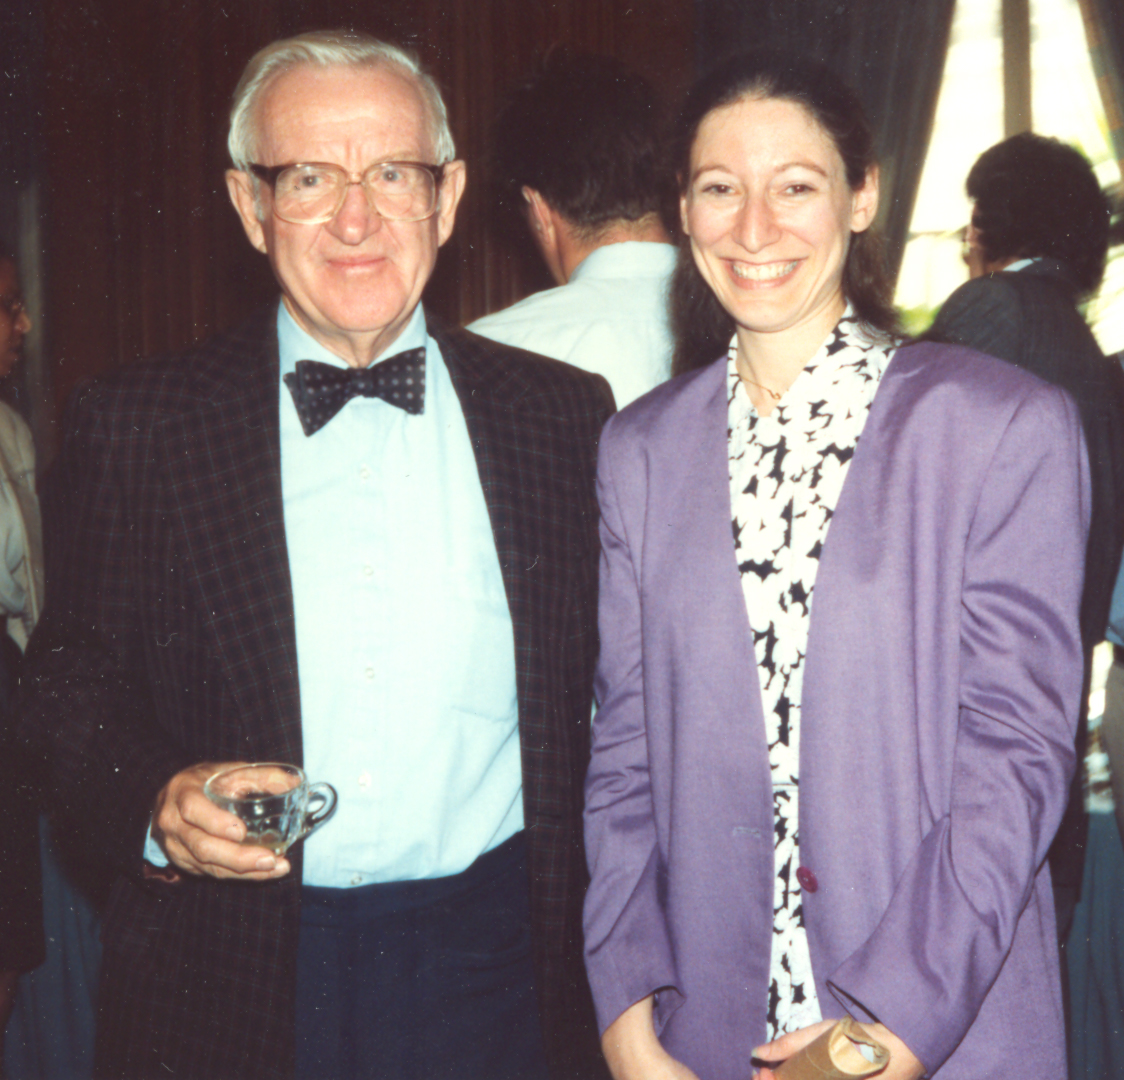 John Paul Stevens with Nancy Marder